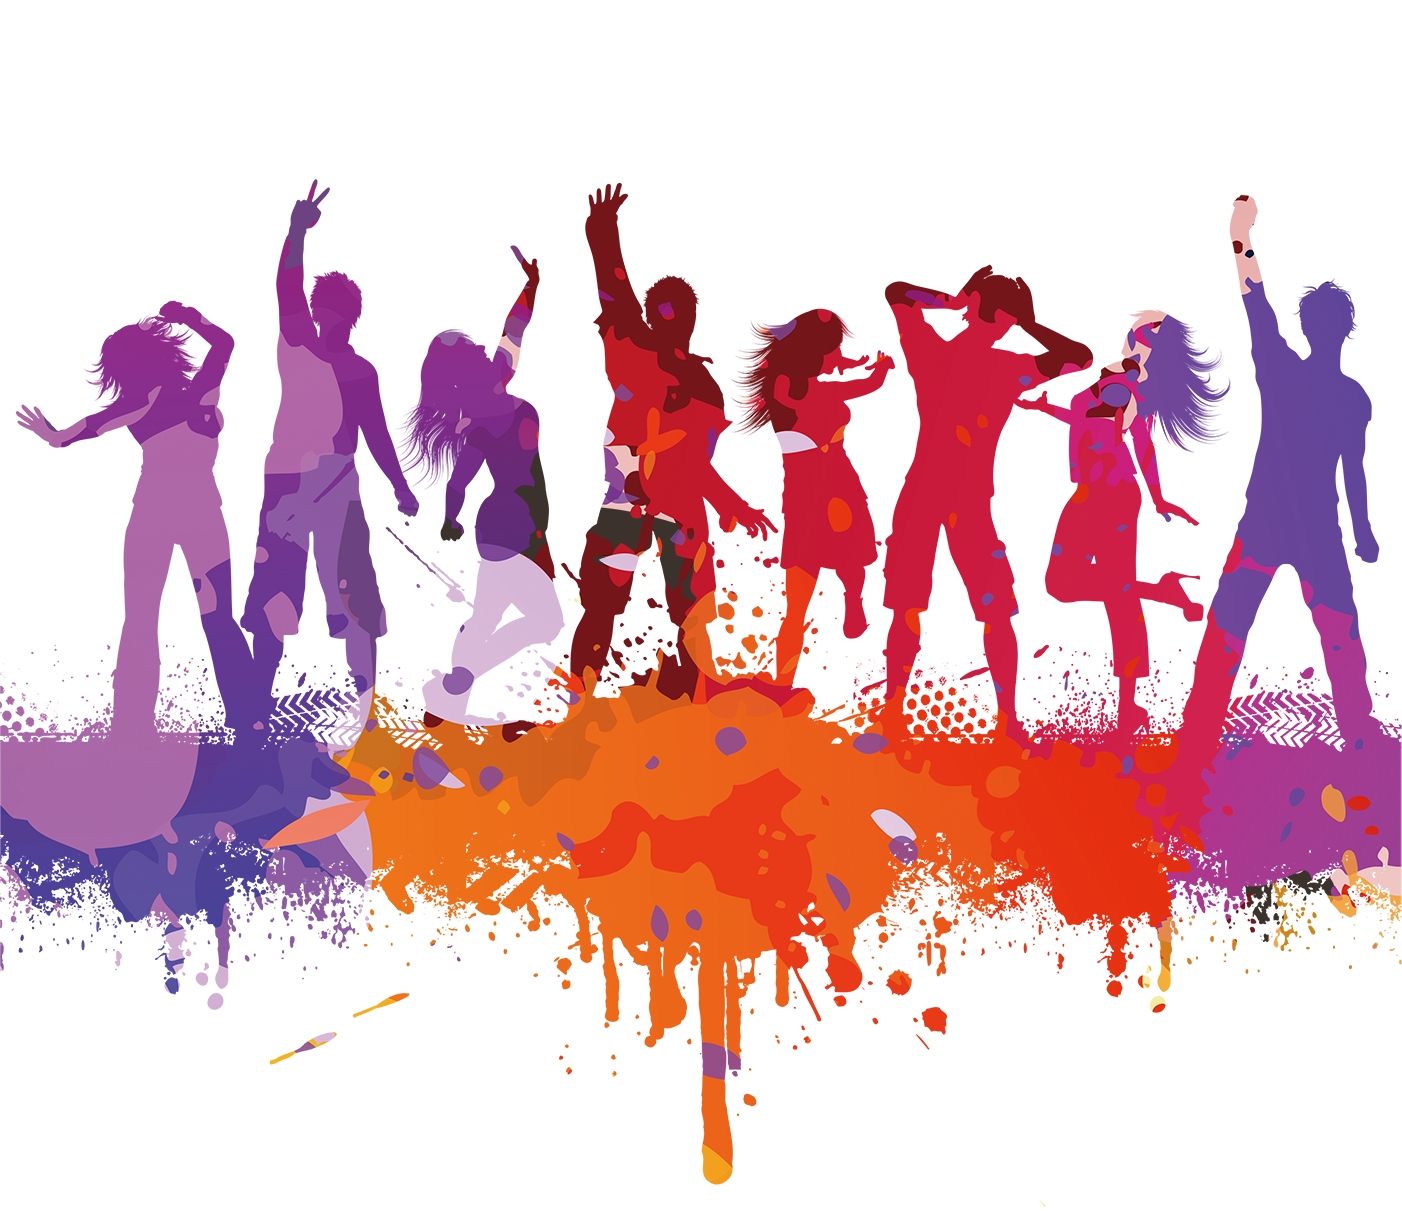 Dance Art Png - Dance party Dance party Silhouette - Color silhouettes of men and ...